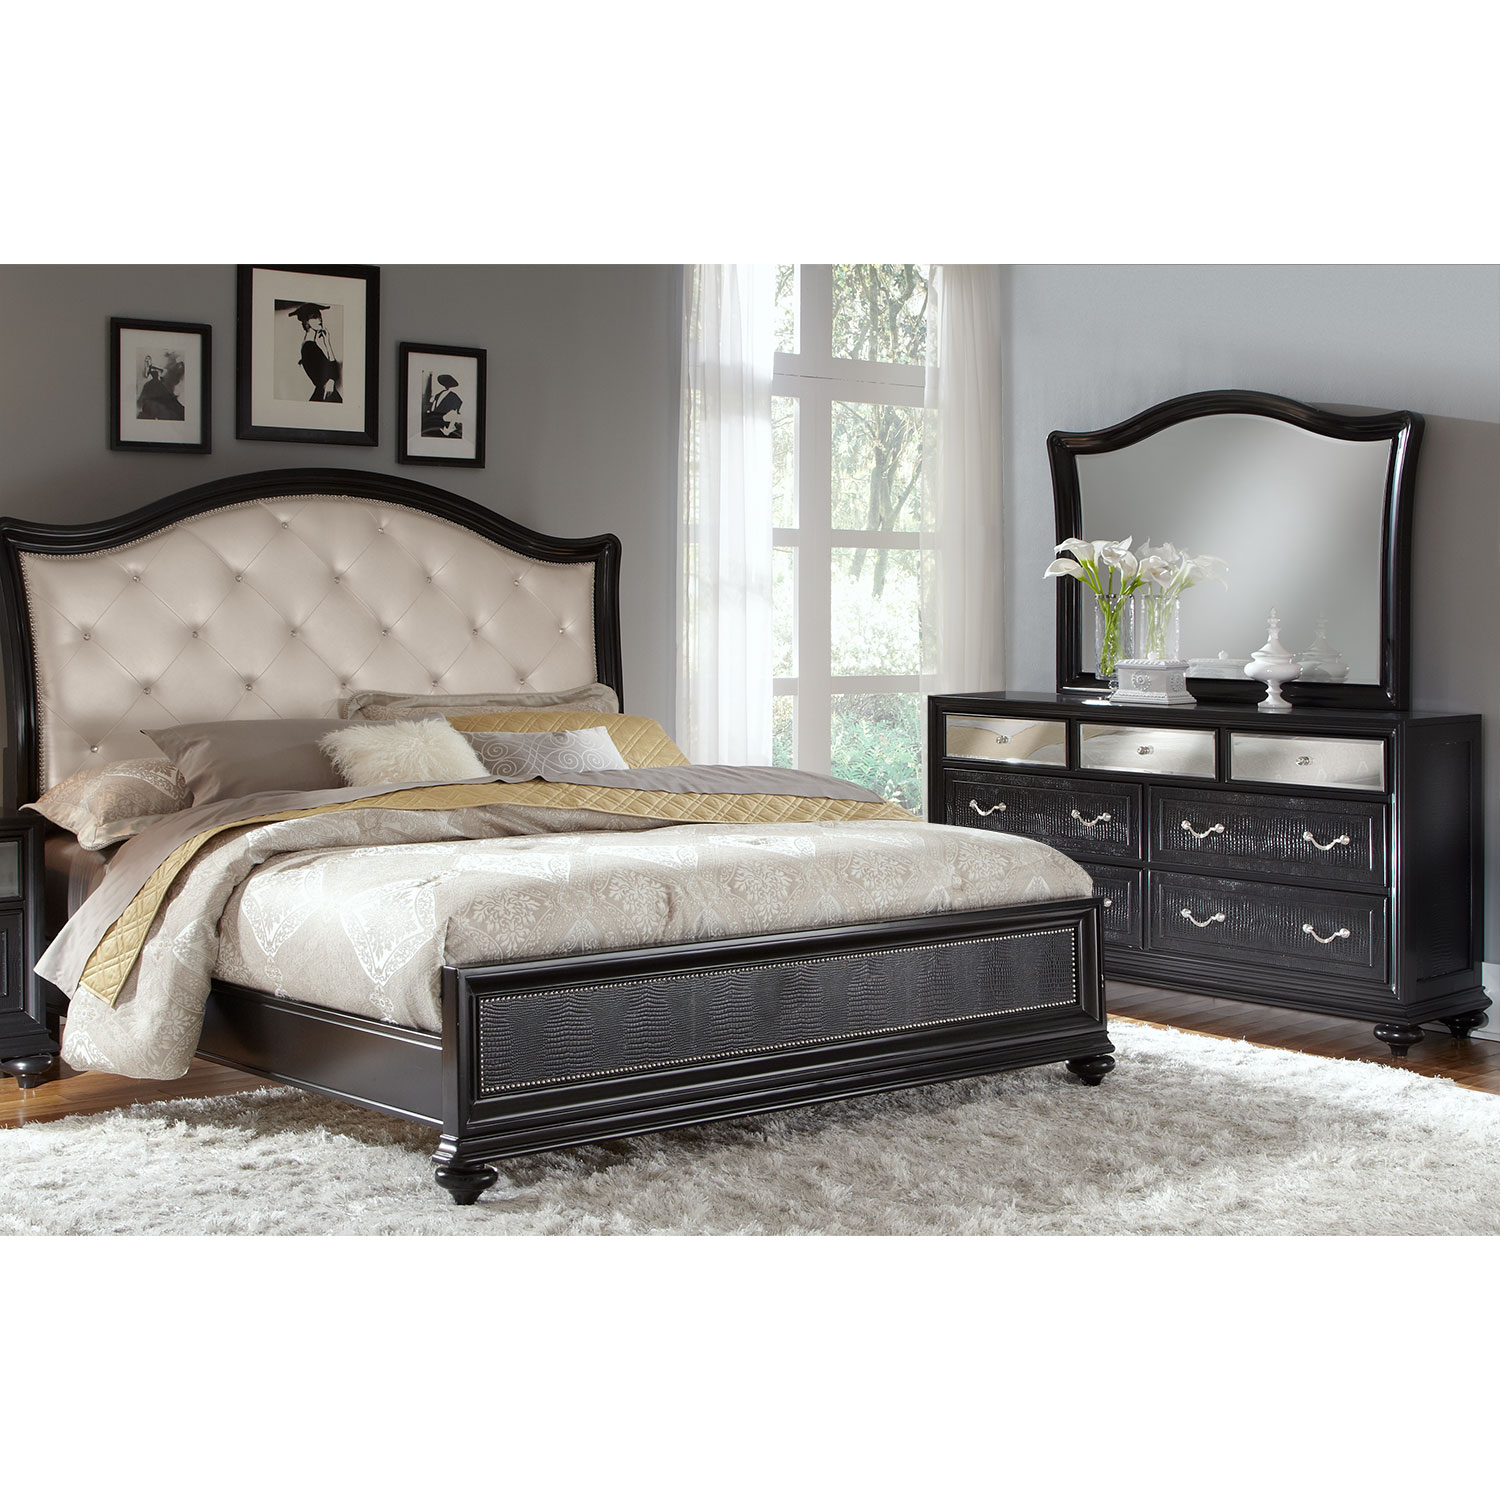 Bedroom Furniture Queen Sets marilyn 5-piece king bedroom set - ebony | value city furniture